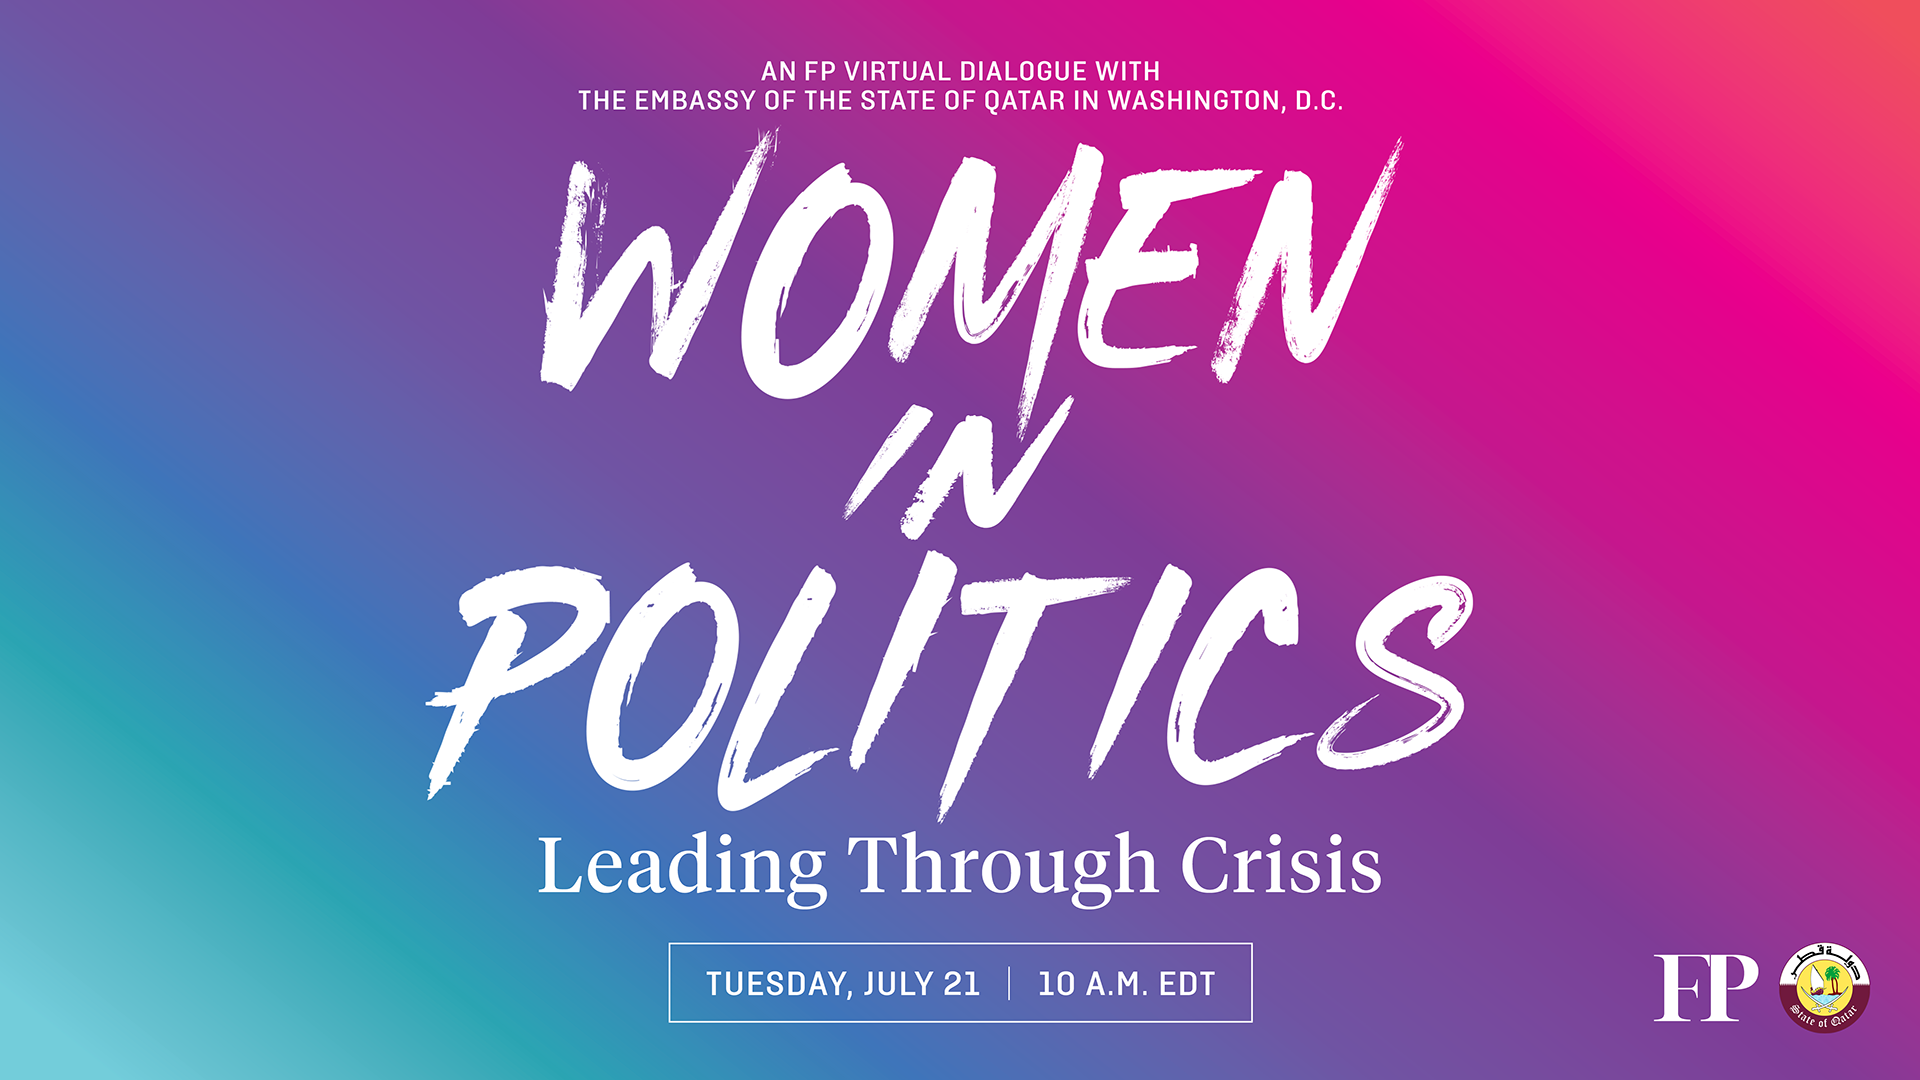 Join FP on July 21 for the start of our 2020 Her Power series elevating women's voices on the global stage.